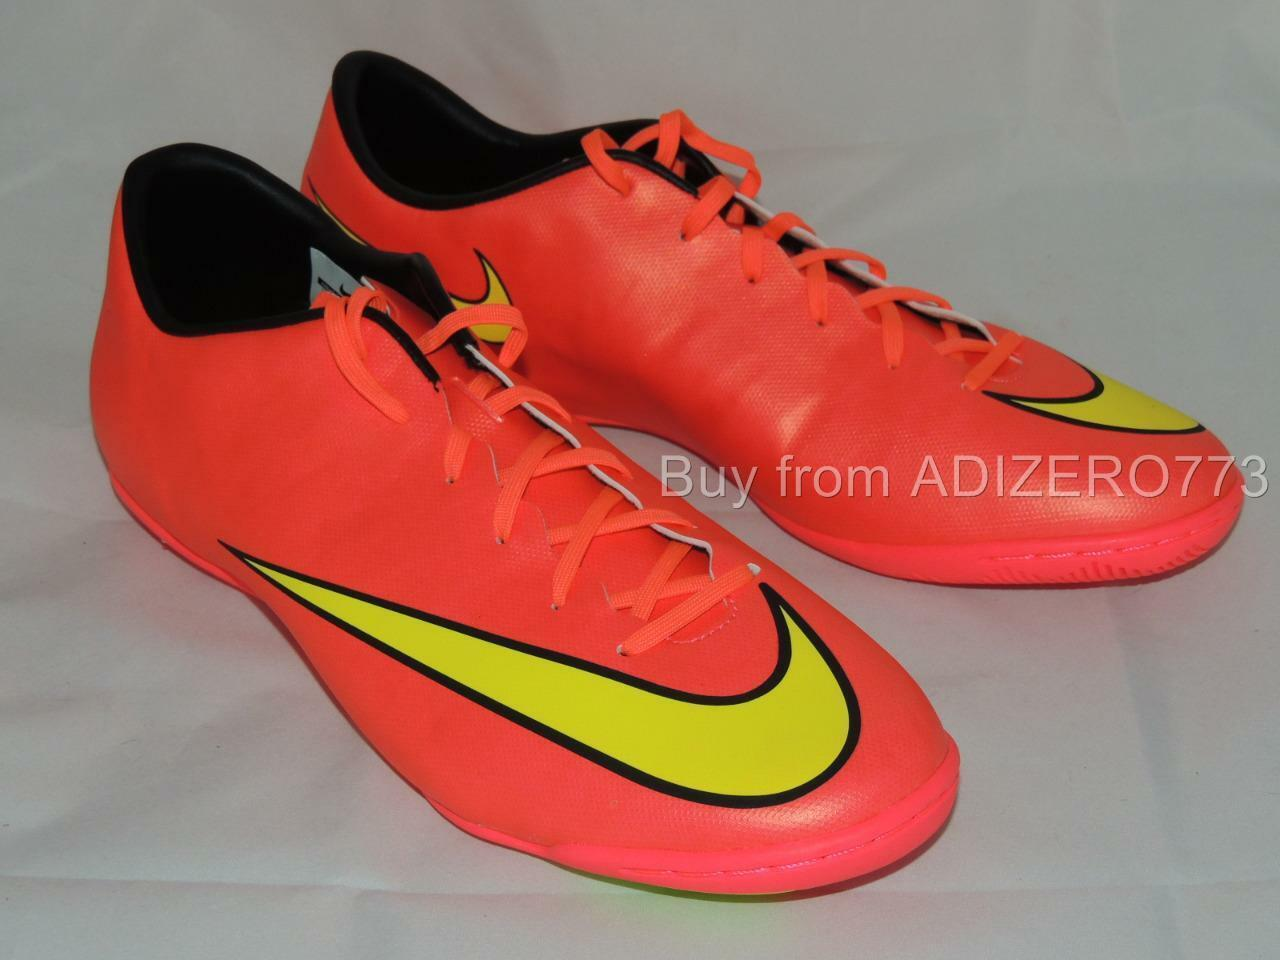 Nike mercurial sieg v ic - revier stiefel 690 bei 12,5 uns 651635 690 stiefel - gold 8786f4